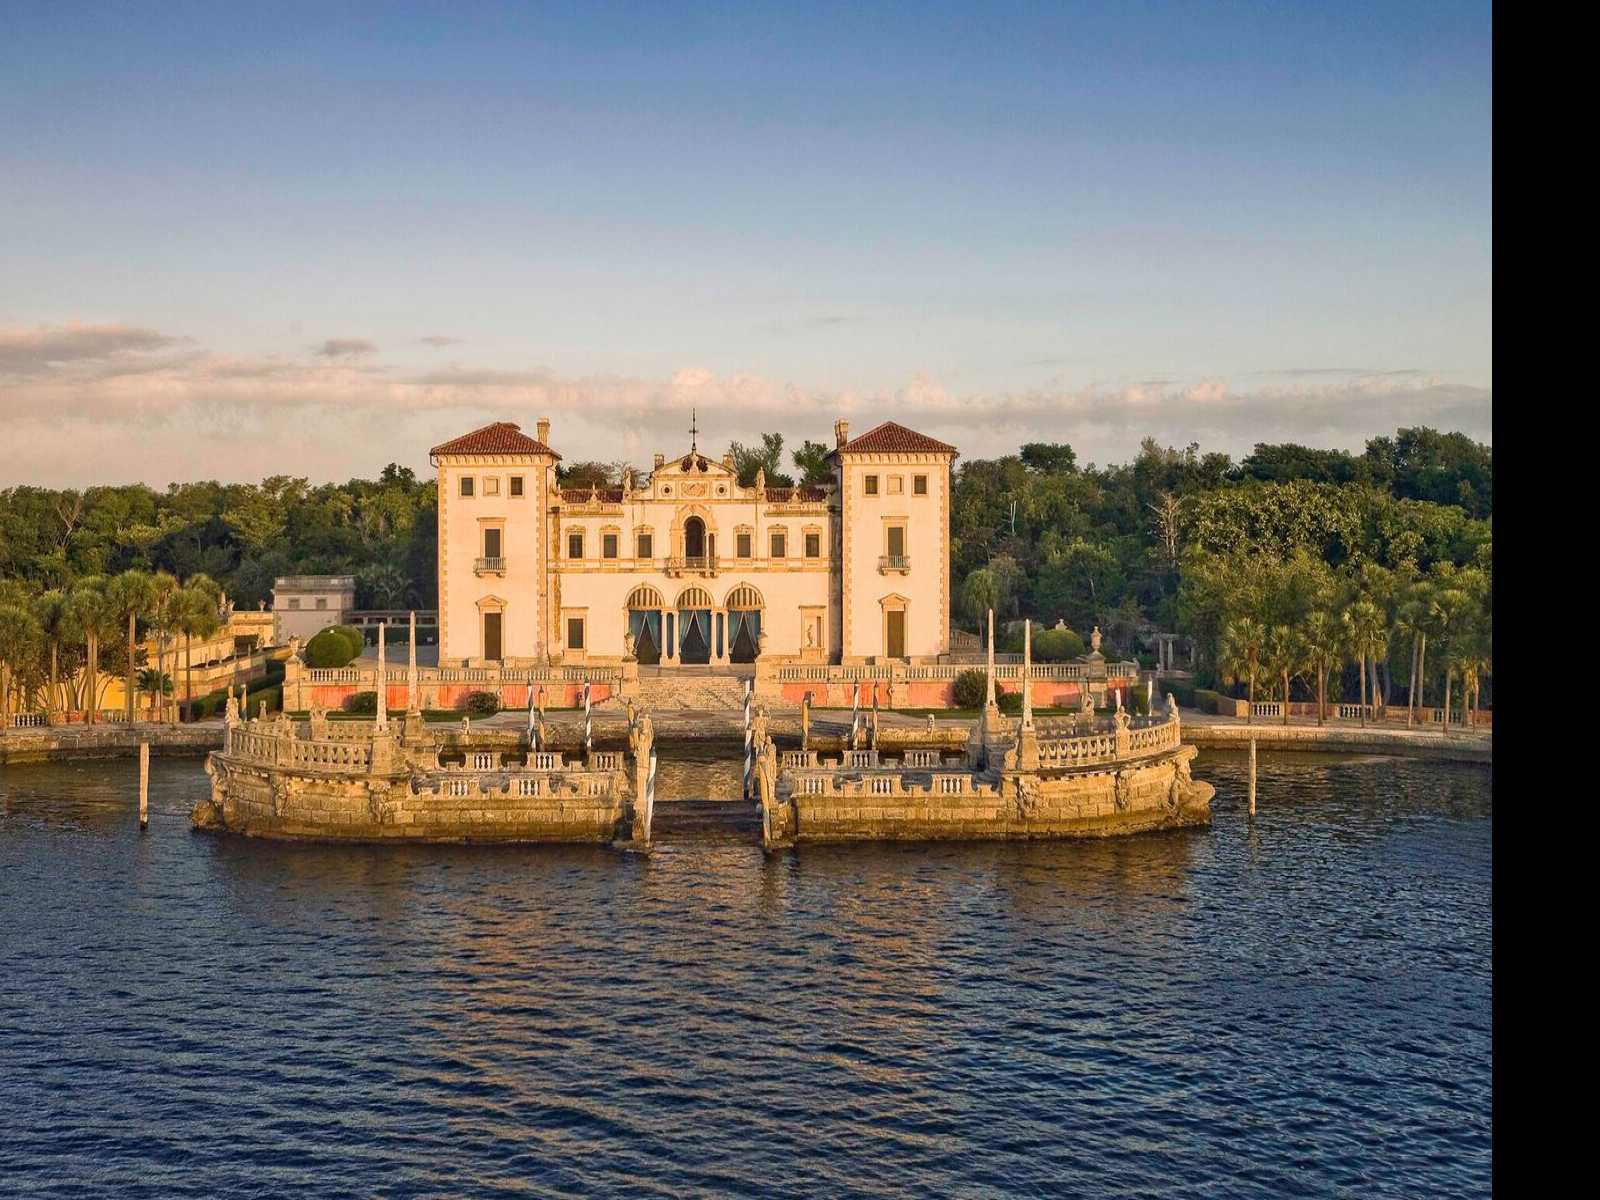 Vizcaya's Centennial Sets Stage for Next 100 Years by Expanding Community Role